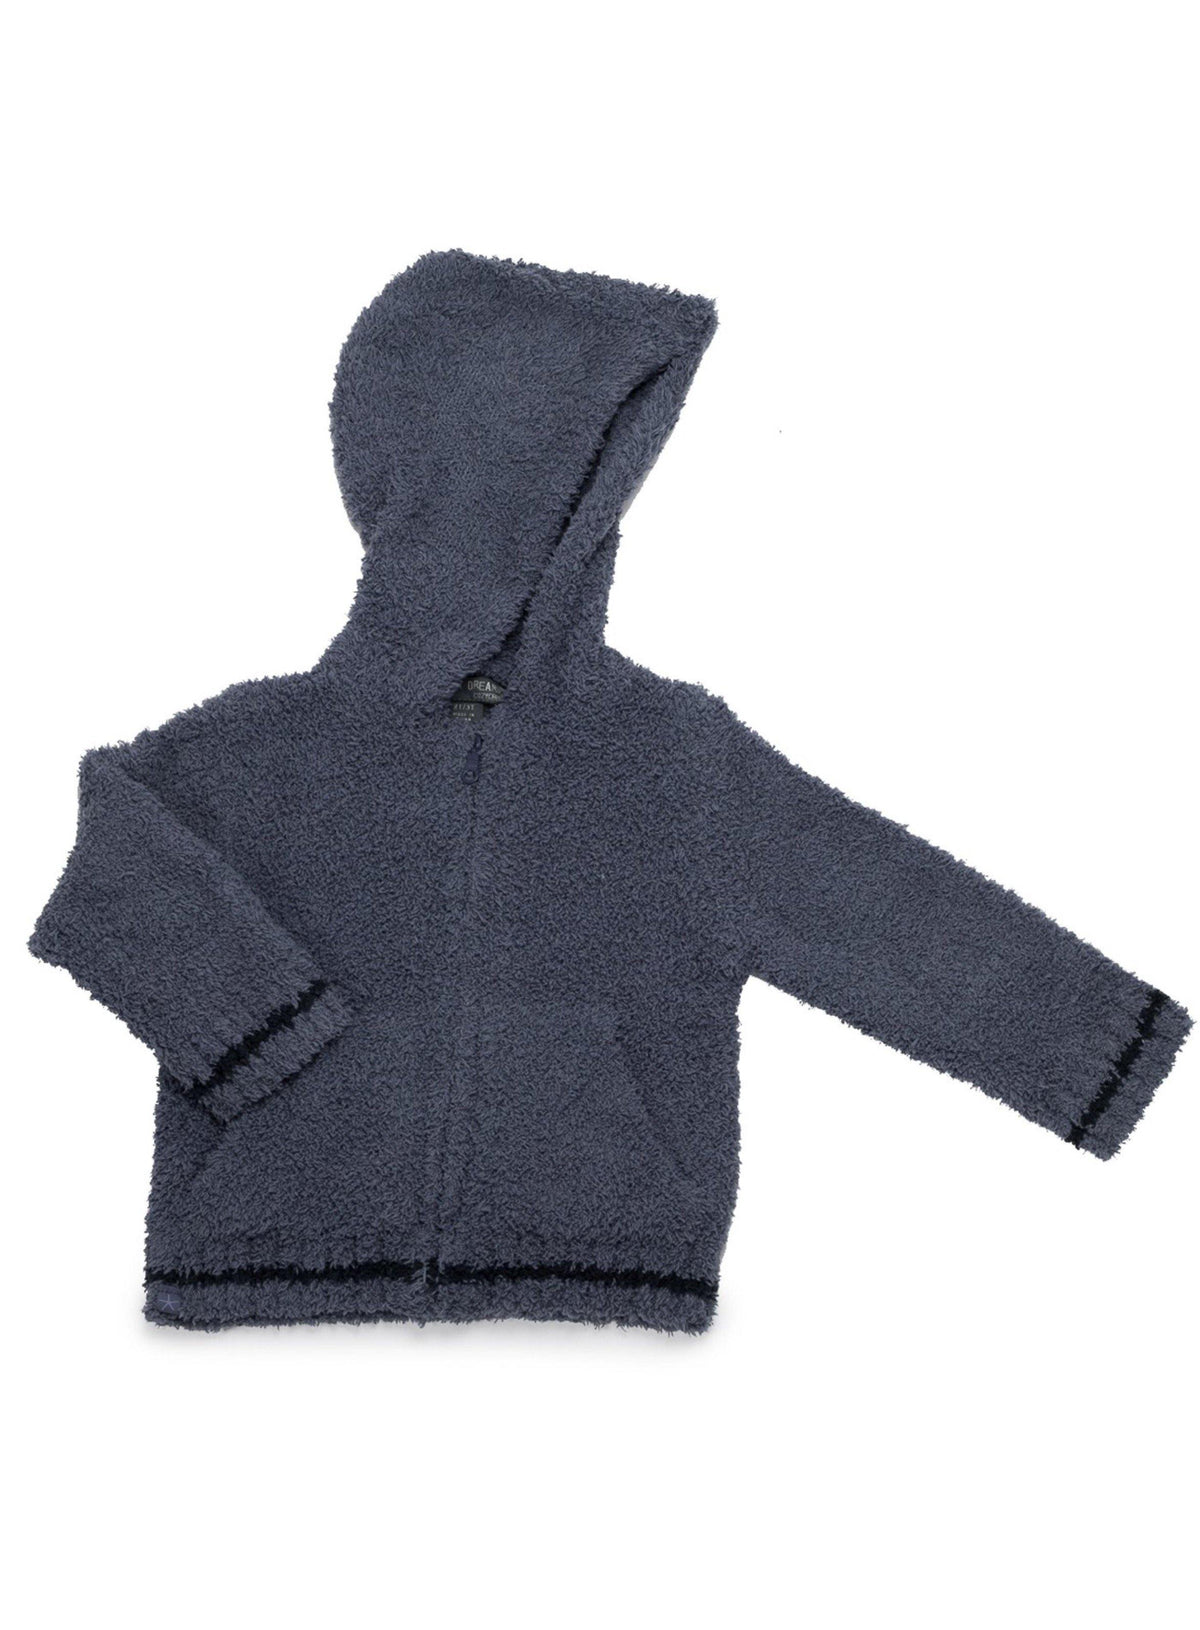 CozyChic Toddler Zip Up Hoodie - Wheat Boutique